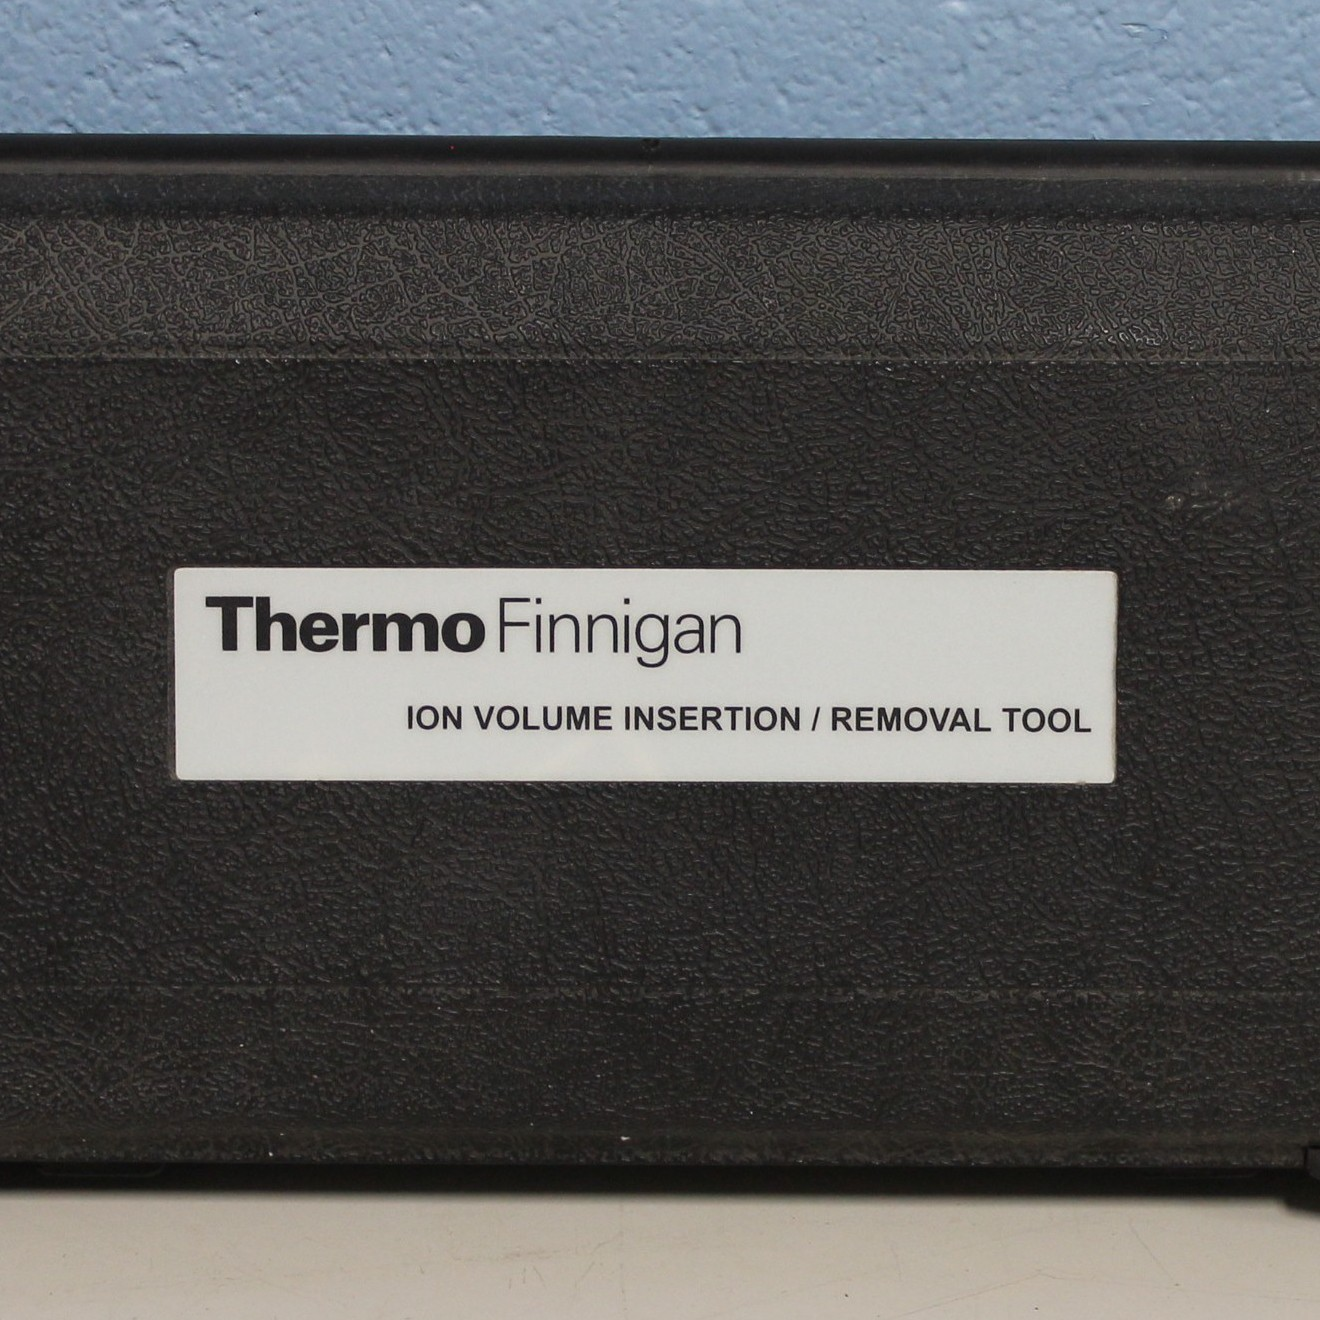 Thermo Finnigan Ion Volume Insertion/Removal Tool Image